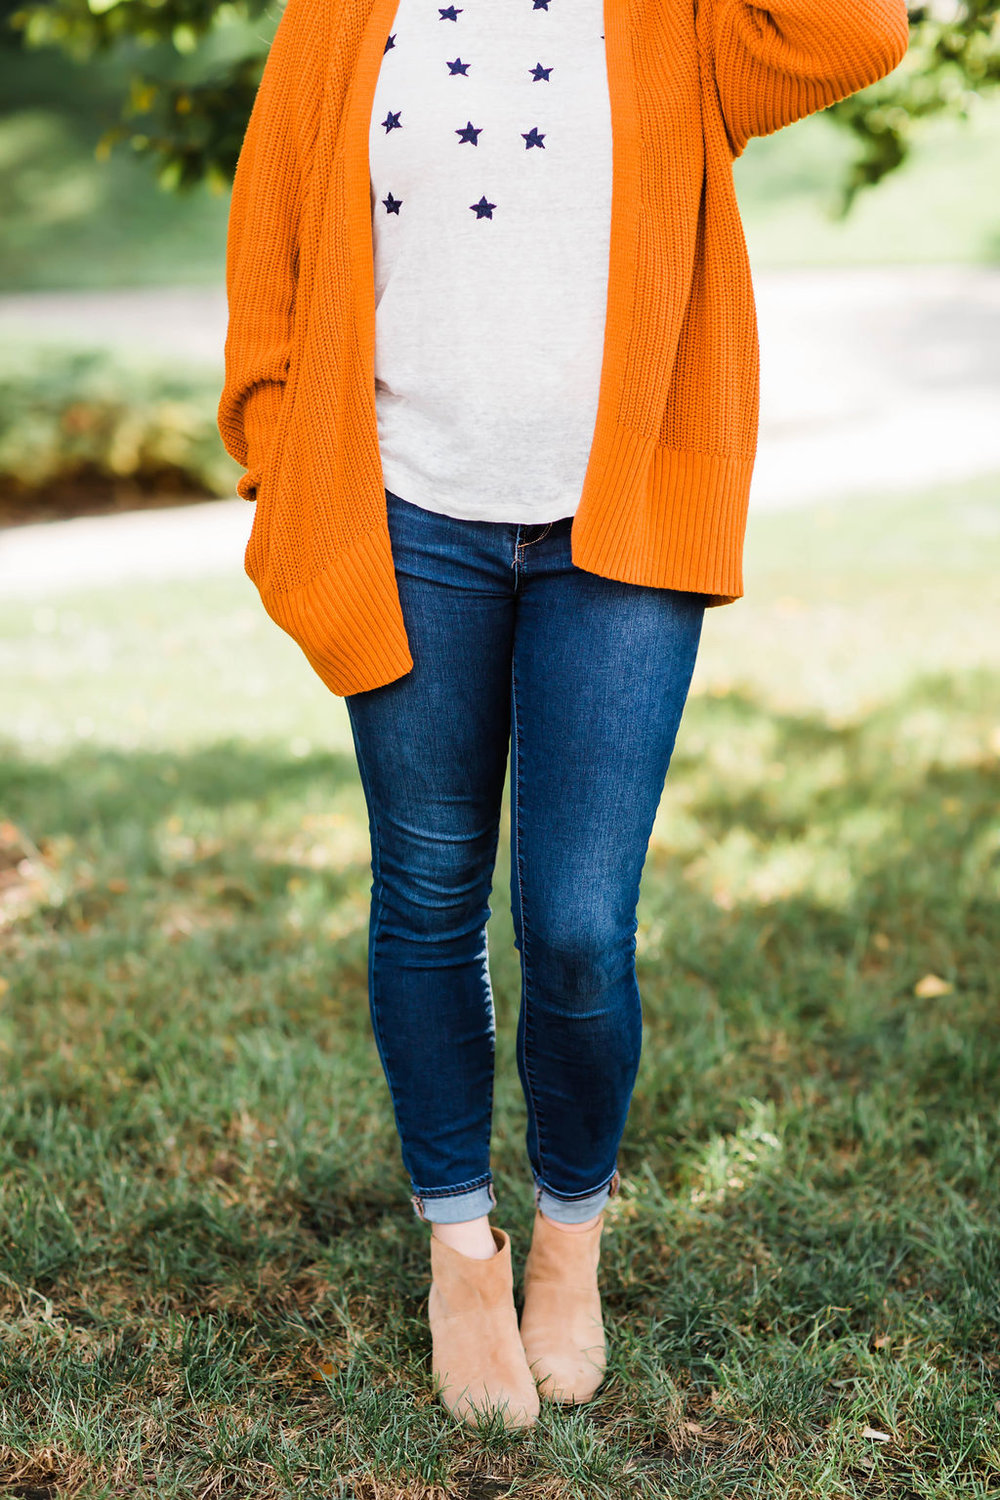 Outfit Accent, Orange Cardigan